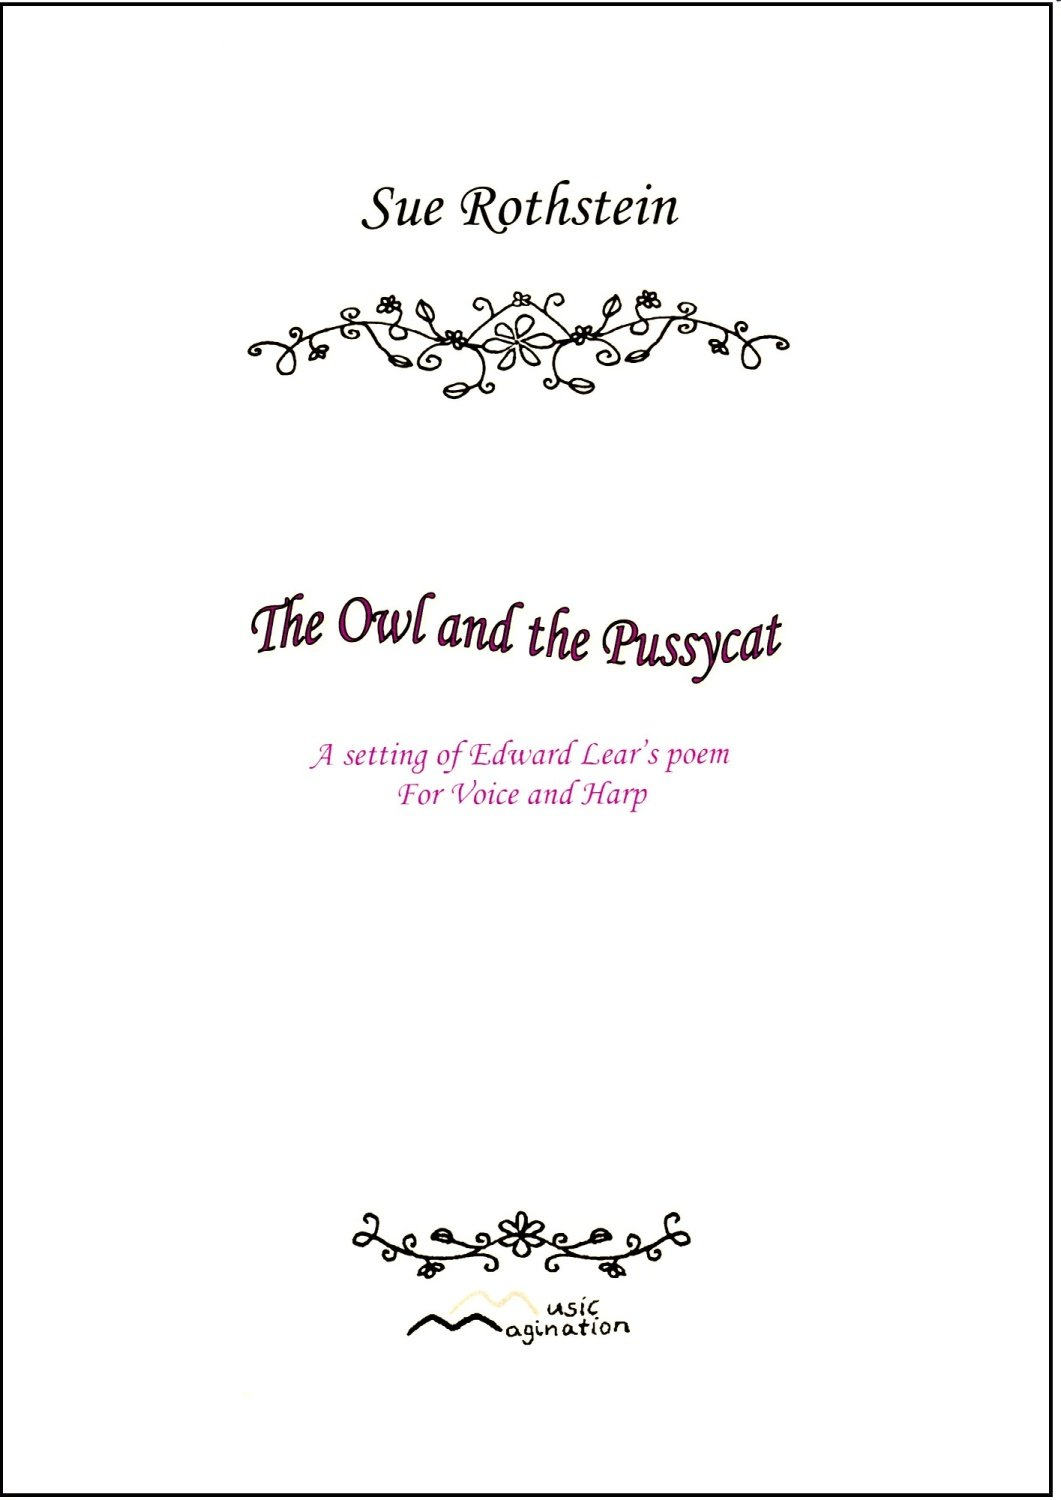 The Owl and the Pussycat - Sue Rothstein